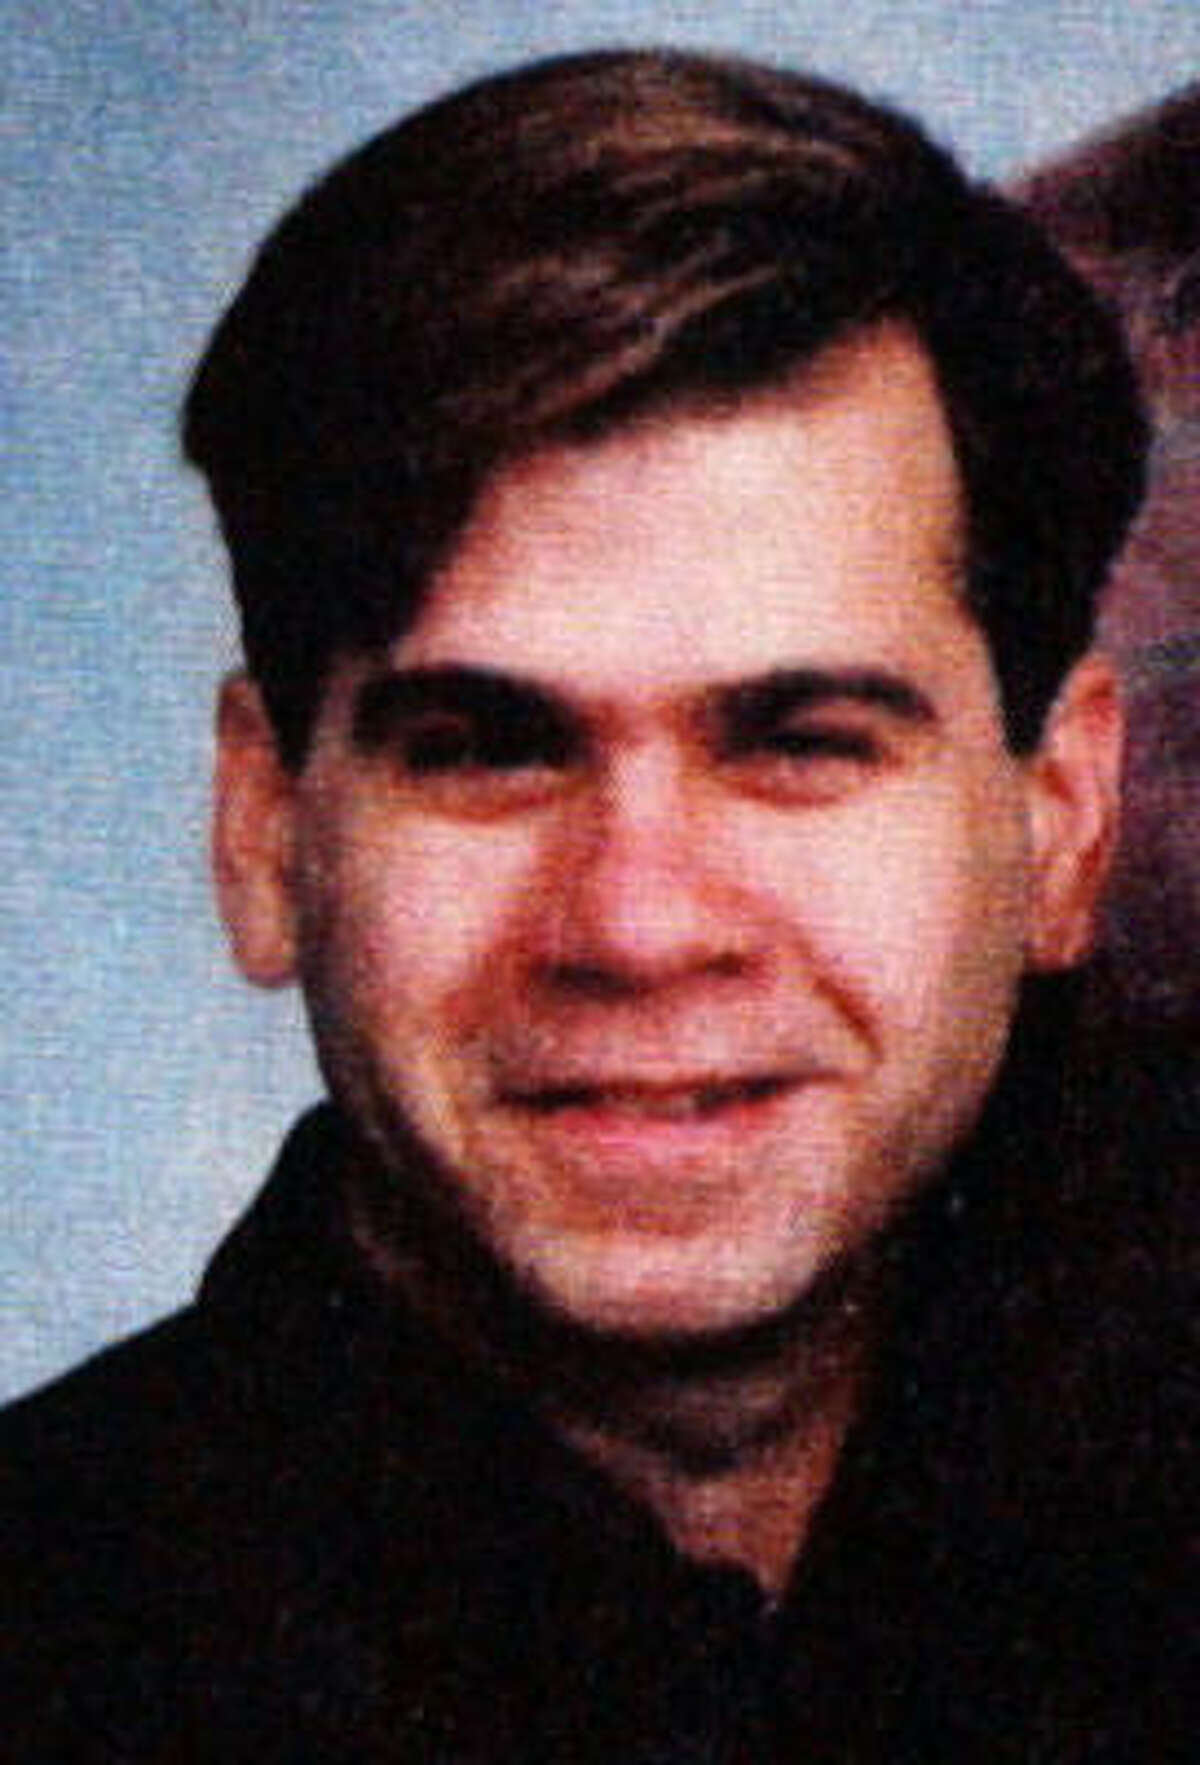 Paul Broussard was killed outside a Montrose nightclub in 1991.